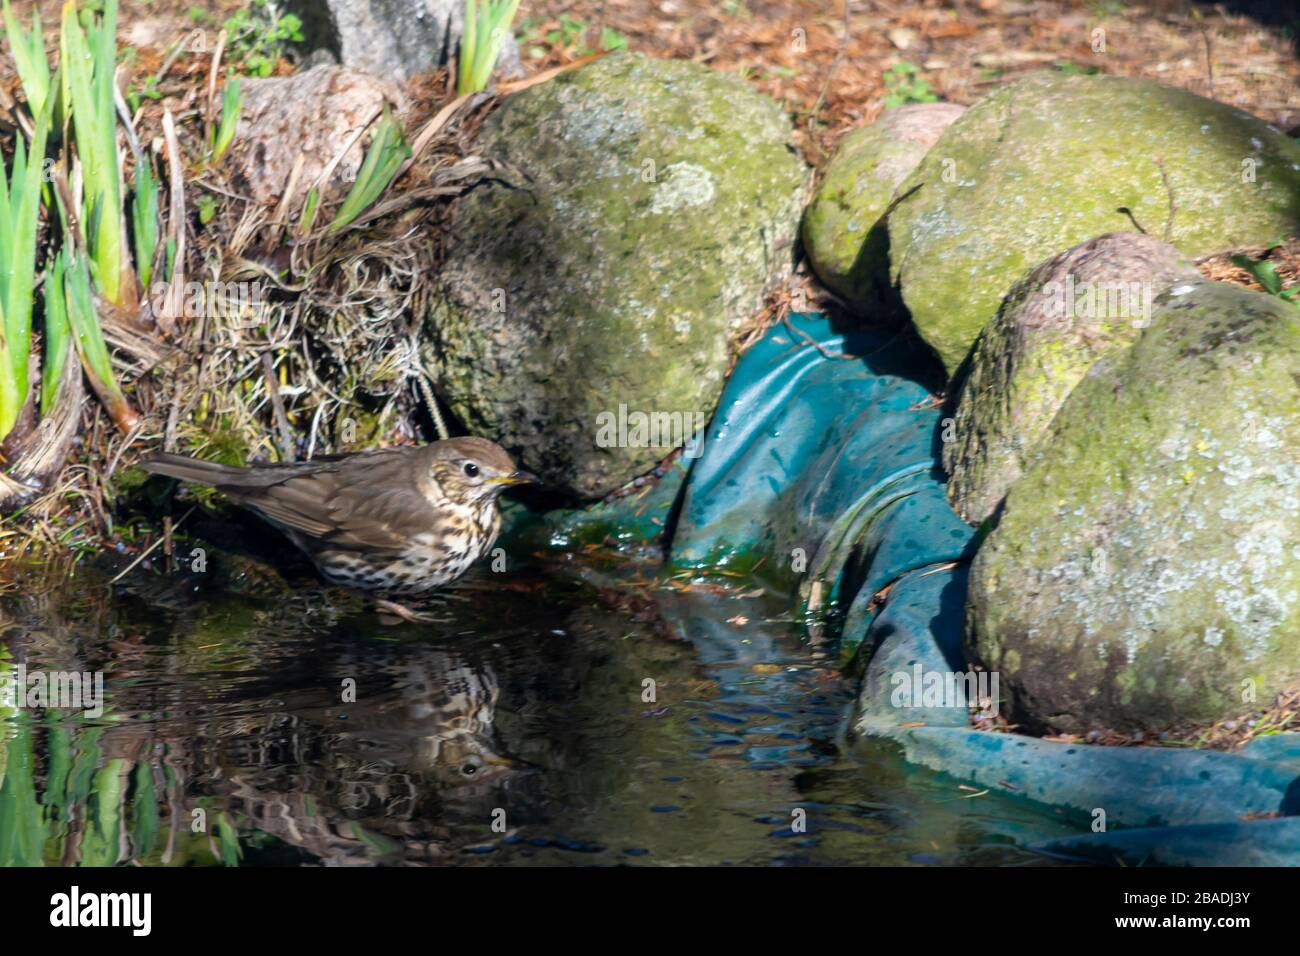 Thrush singer, singer - a species of medium-sized bird from the thrush family, inhabiting Eurasia. Stock Photo